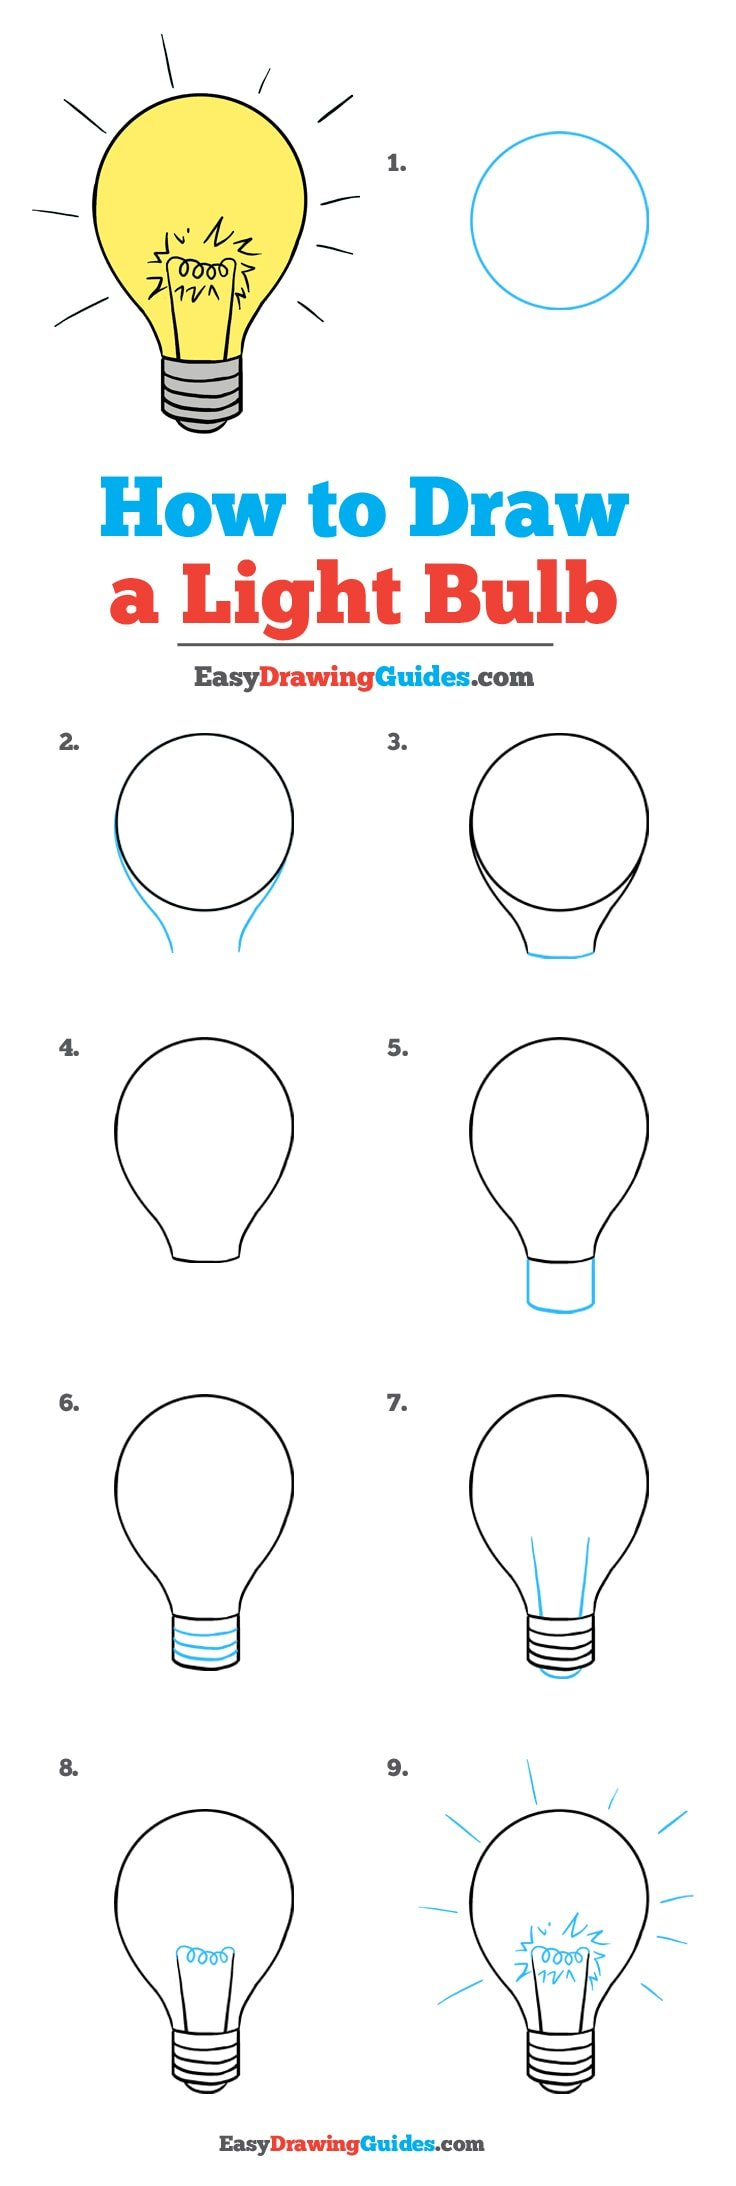 How to Draw Light Bulb